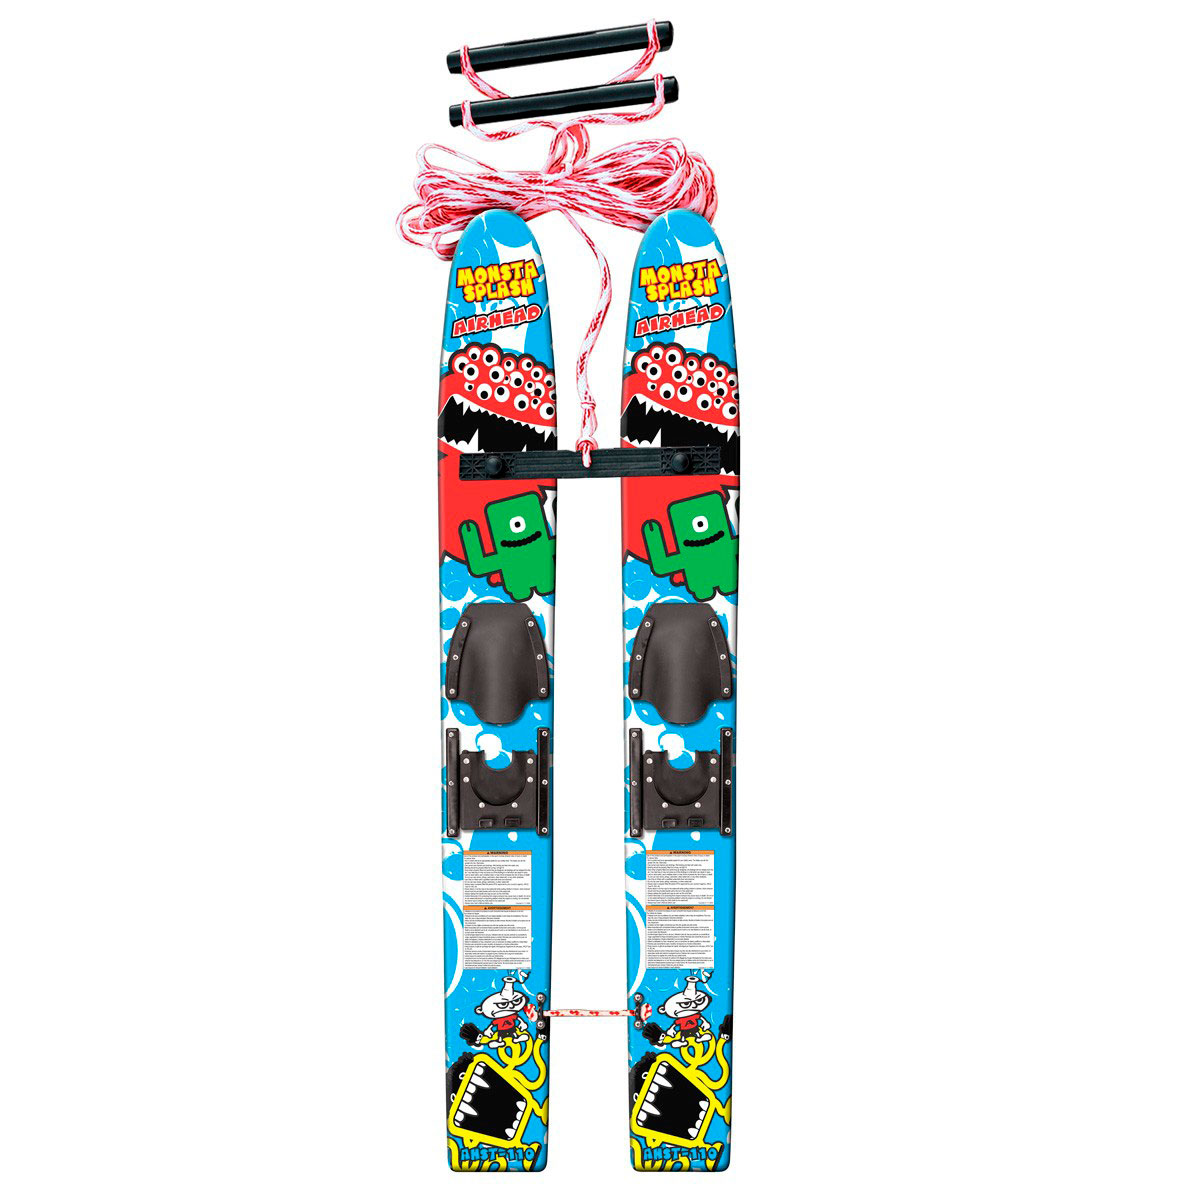 Monsta Splash Trainer Skis Airhead Tow Harness